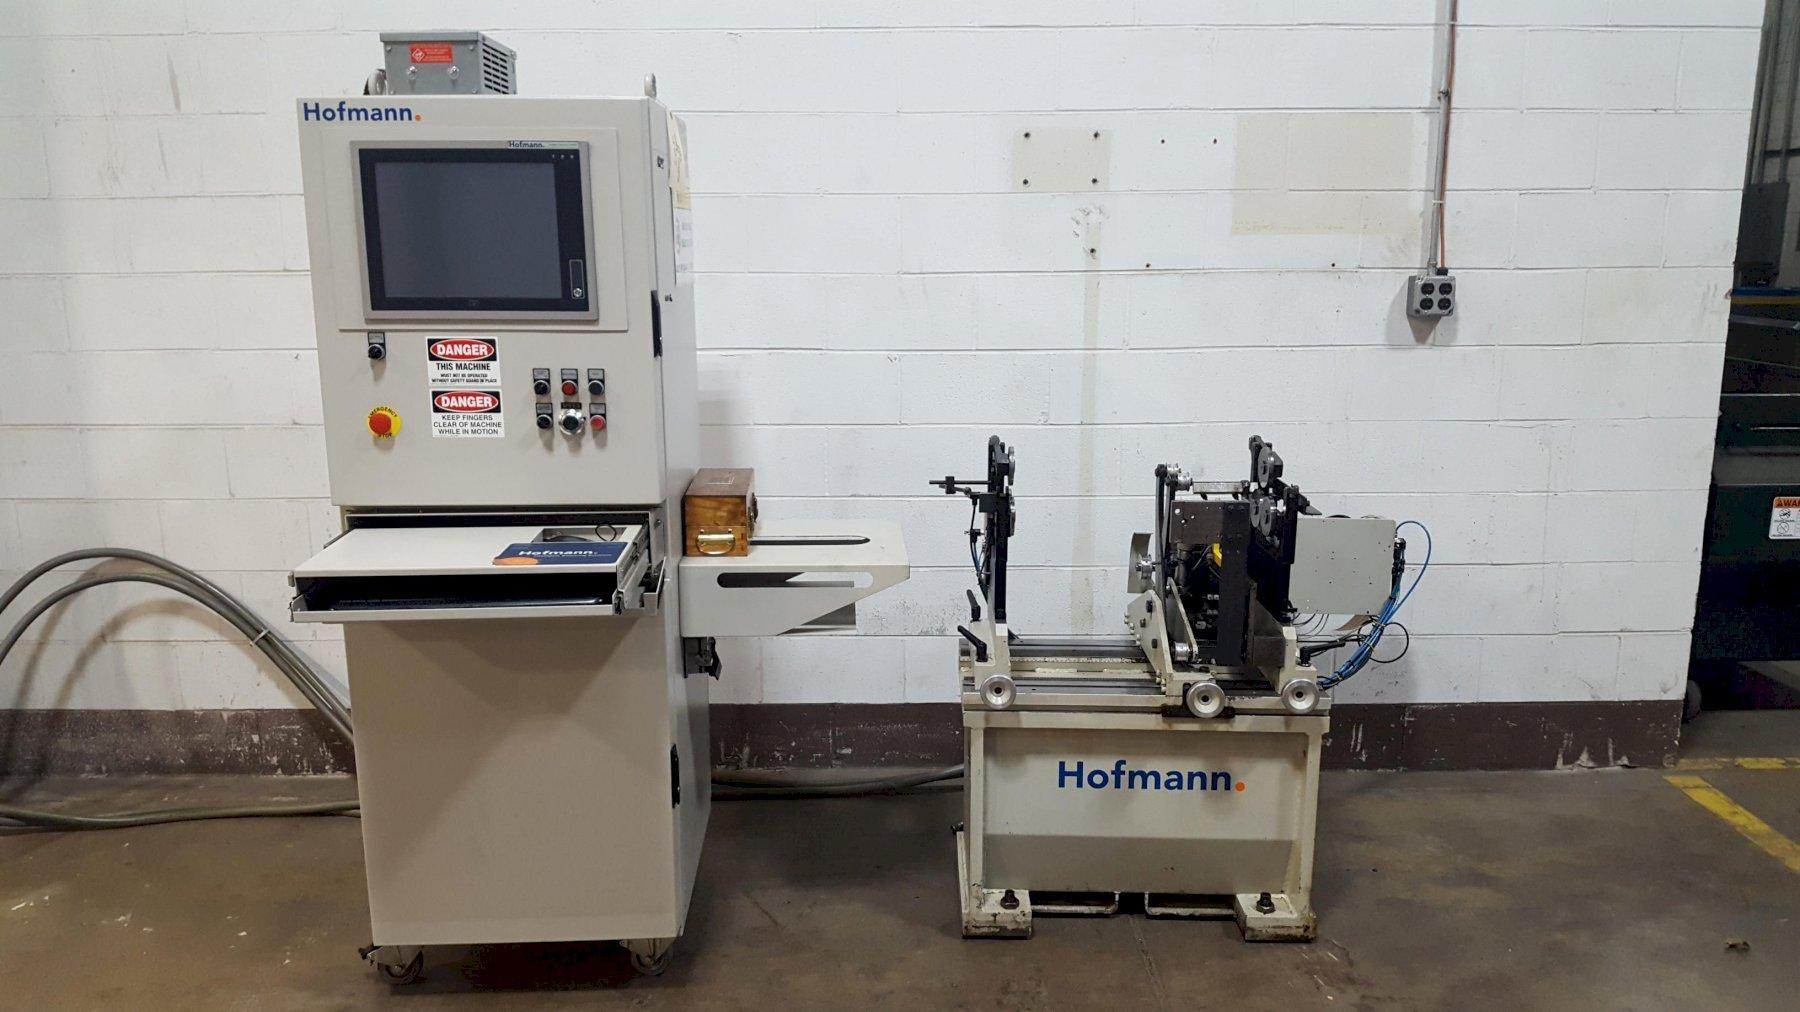 220lb American Hofmann Model PCX-131 Horizontal Hard Bearing Balancing Machine